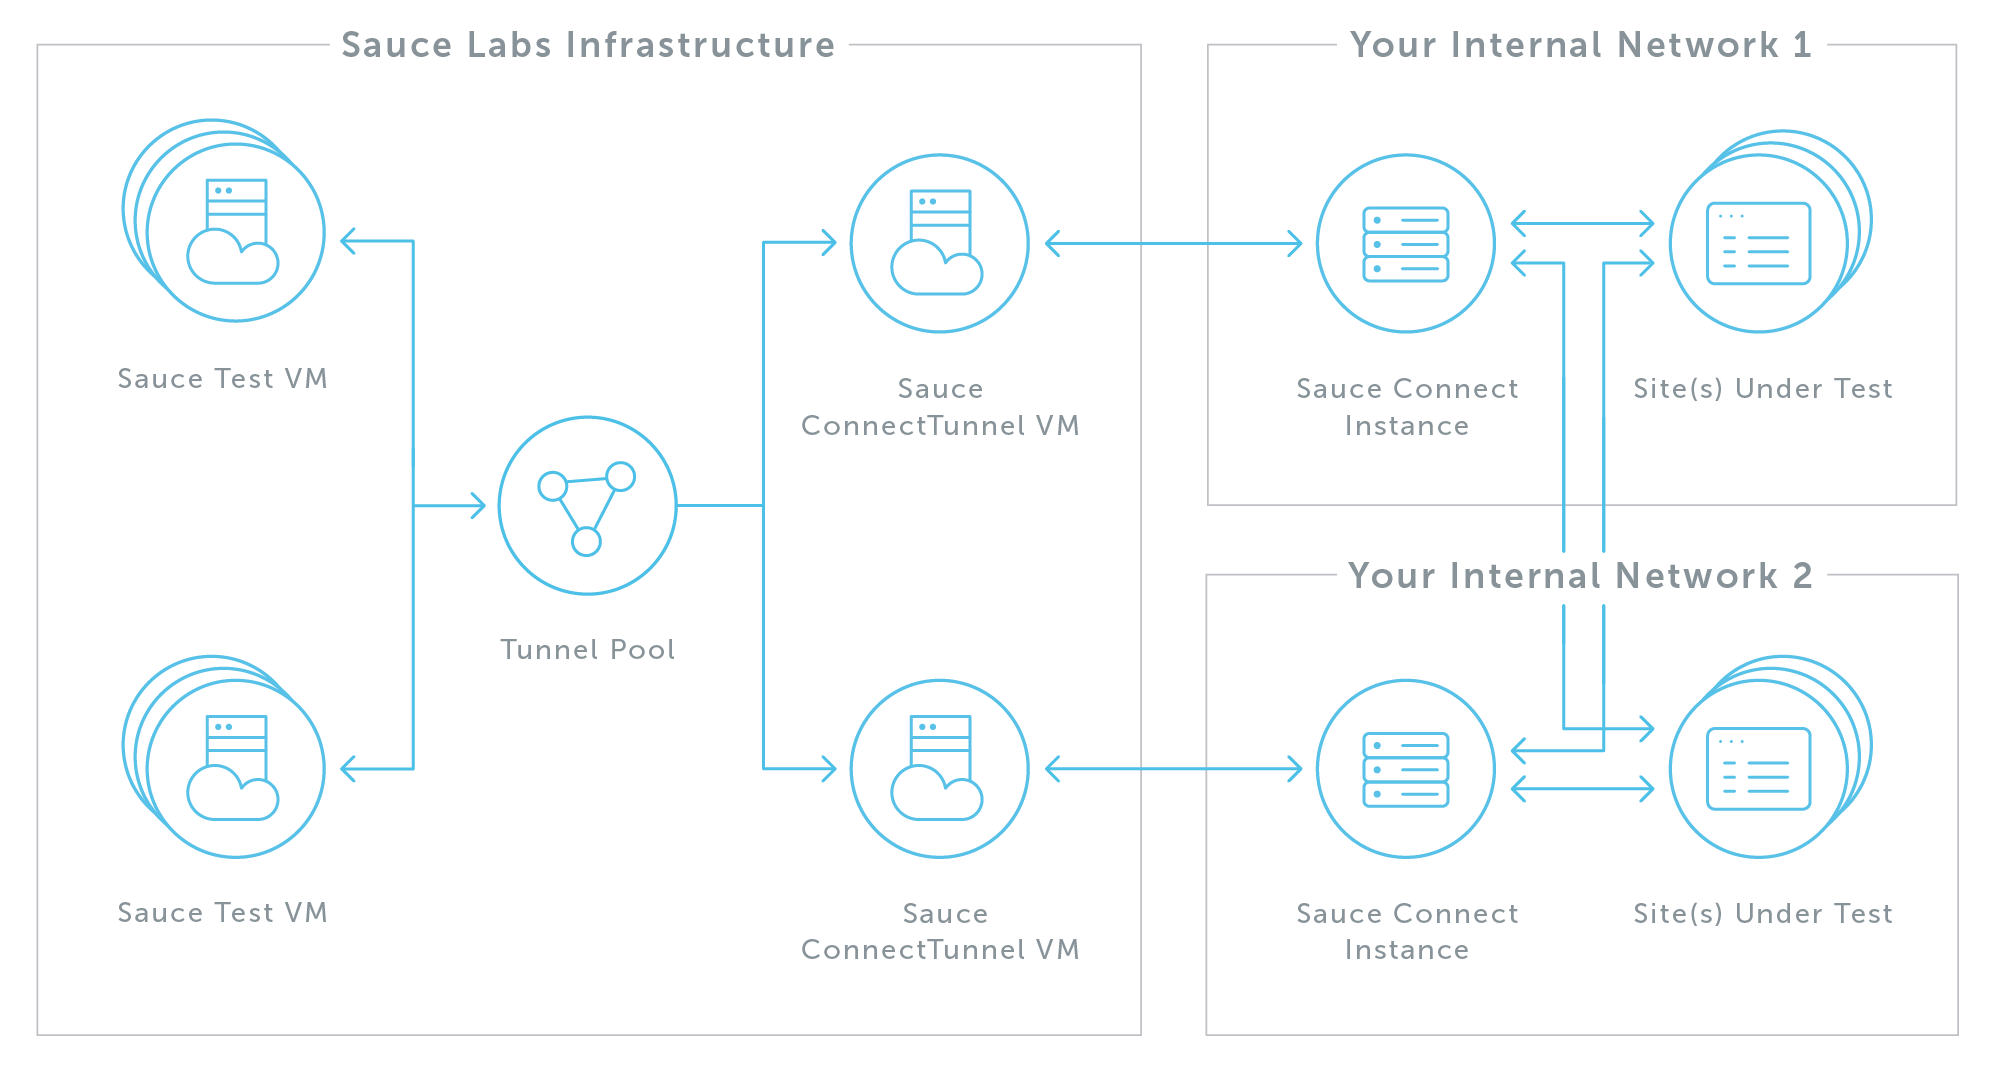 High Availability Sauce Connect Proxy Setup - The Sauce Labs